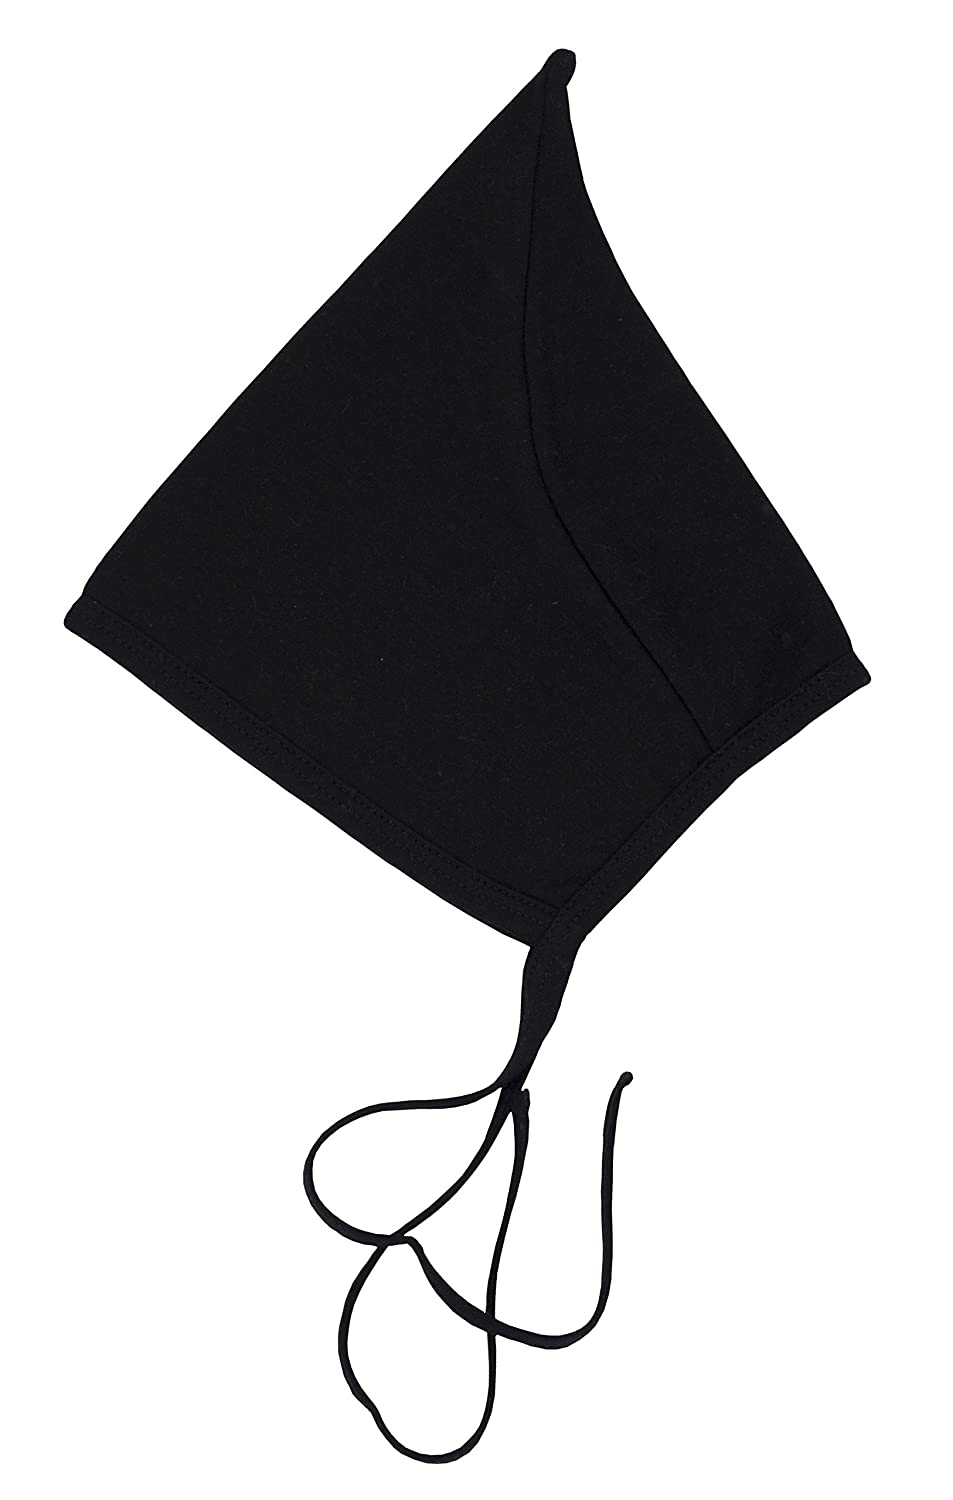 Amoureux Bebe Soft 100/% Cotton Reversible Double Lined Pixie Bonnet hat for Baby and Toddler